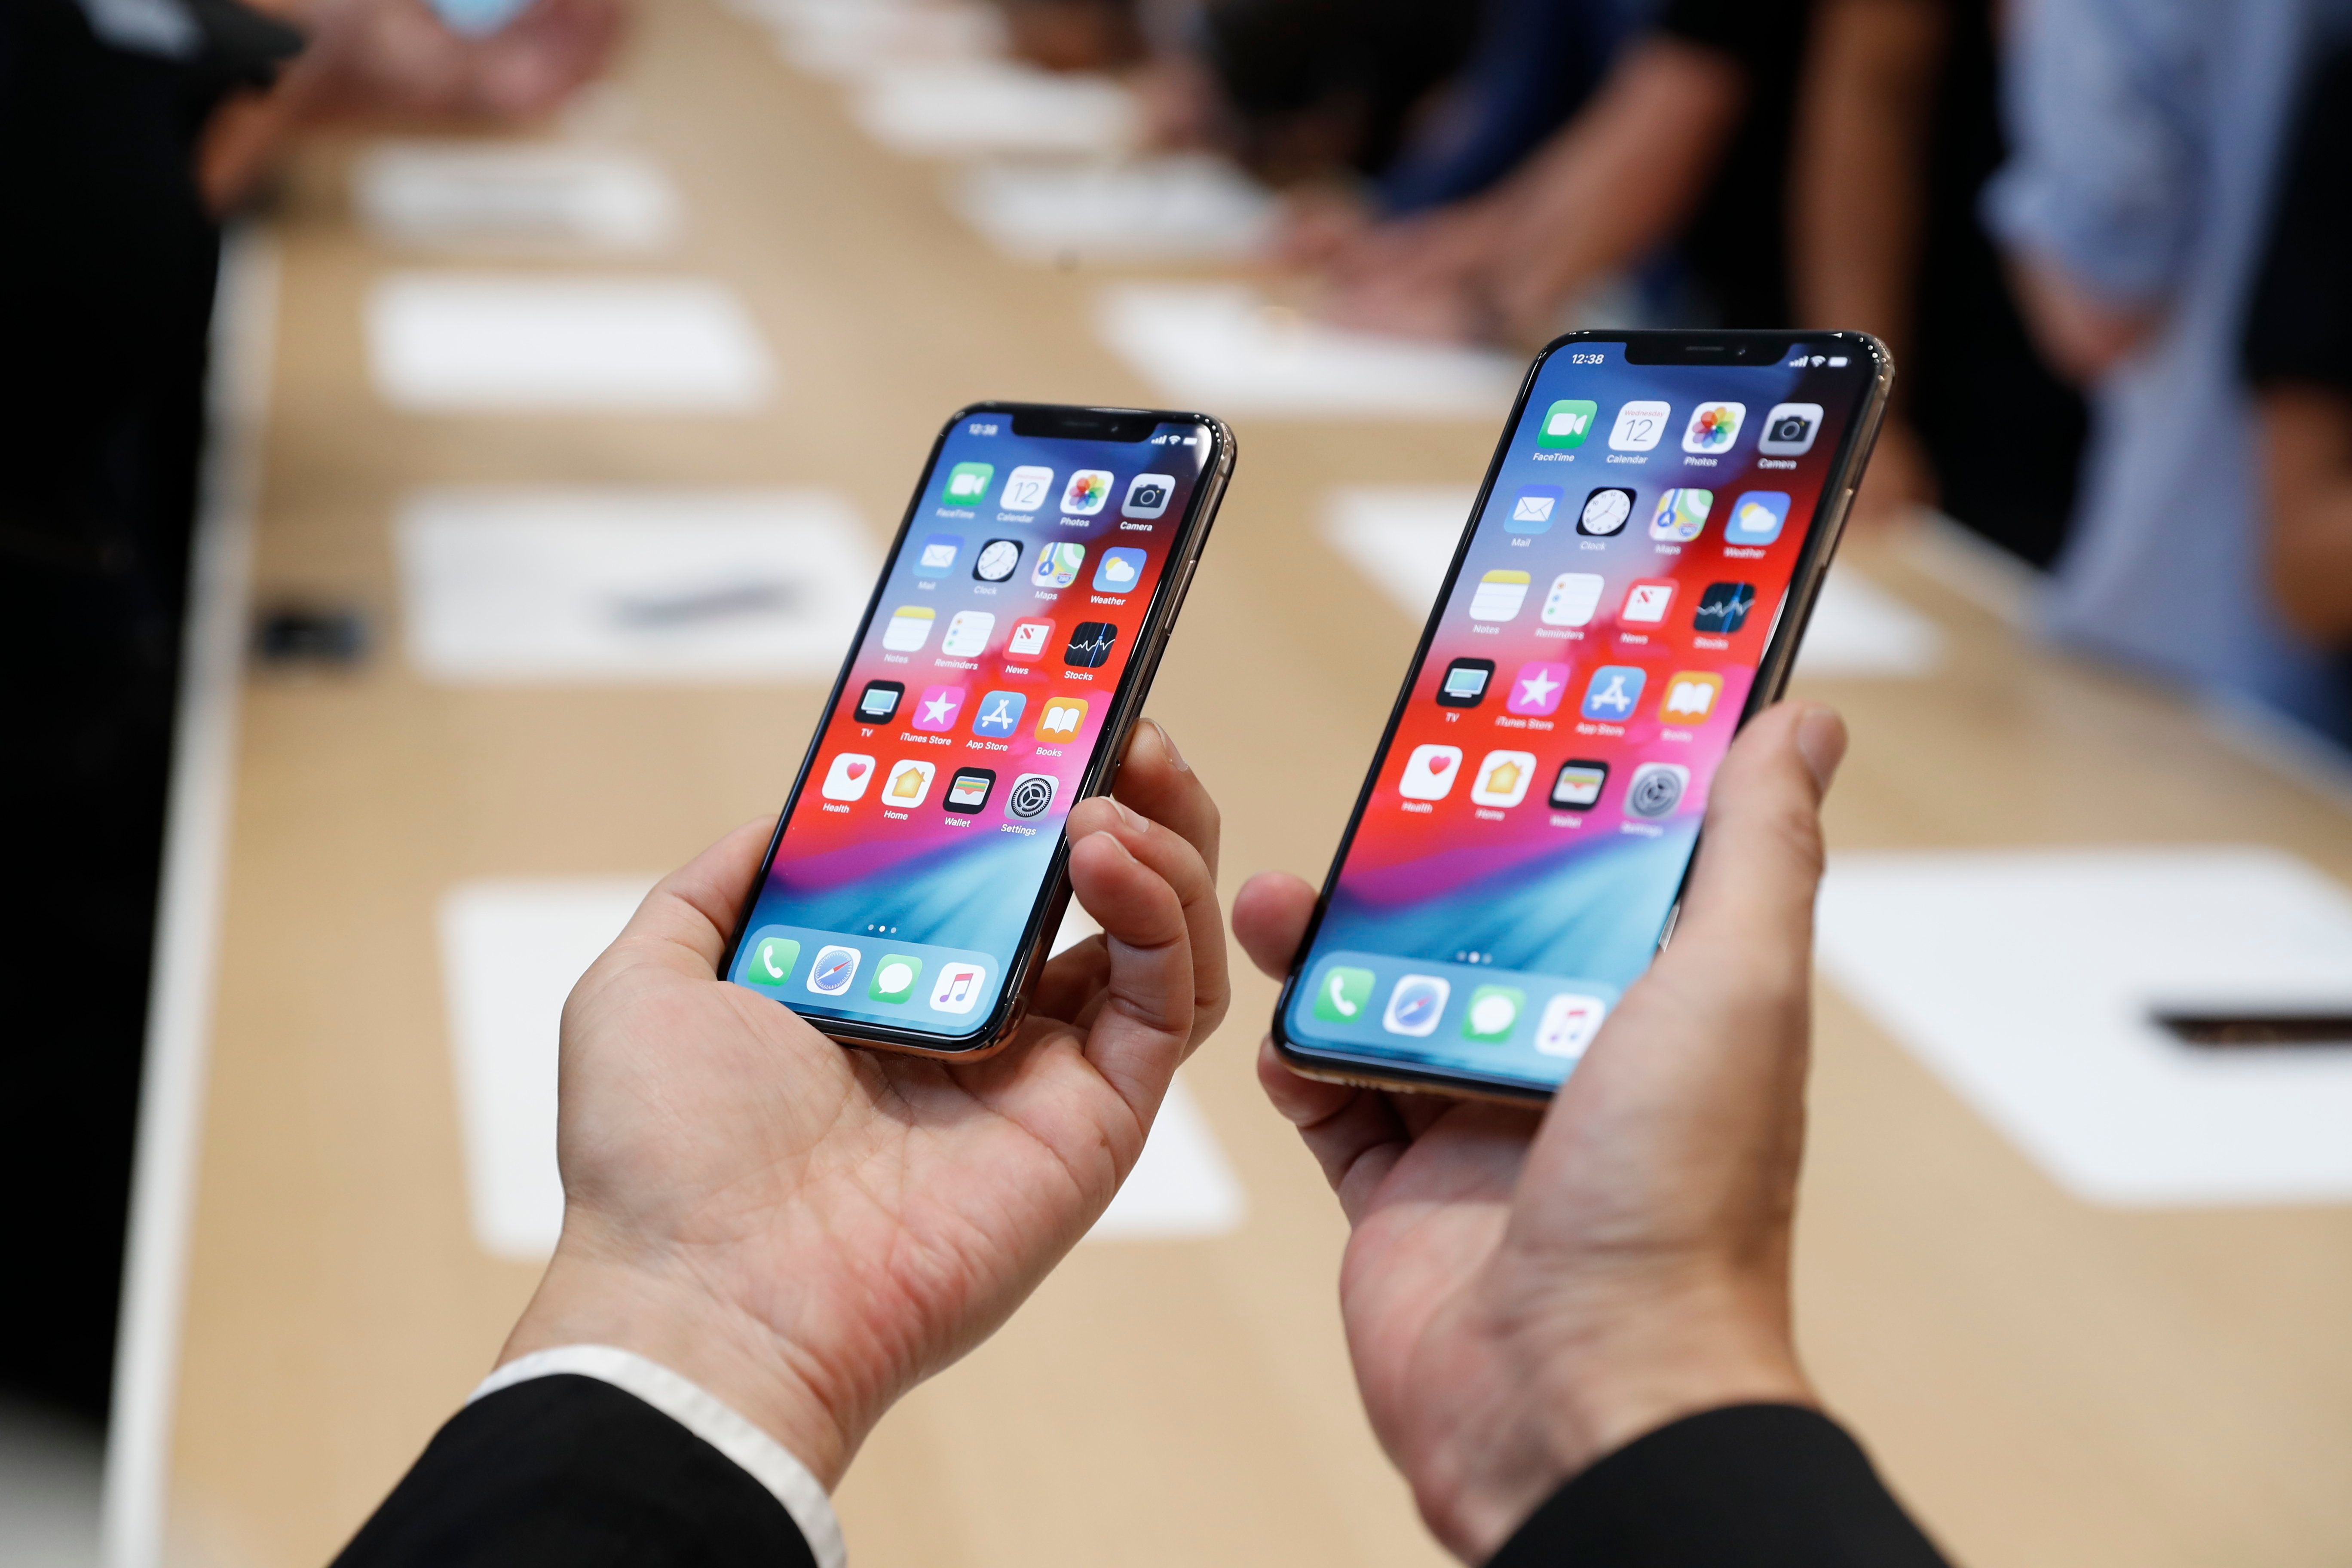 Apple's iPhone Upgrade Program Might Just Be The Best Way To Buy The New